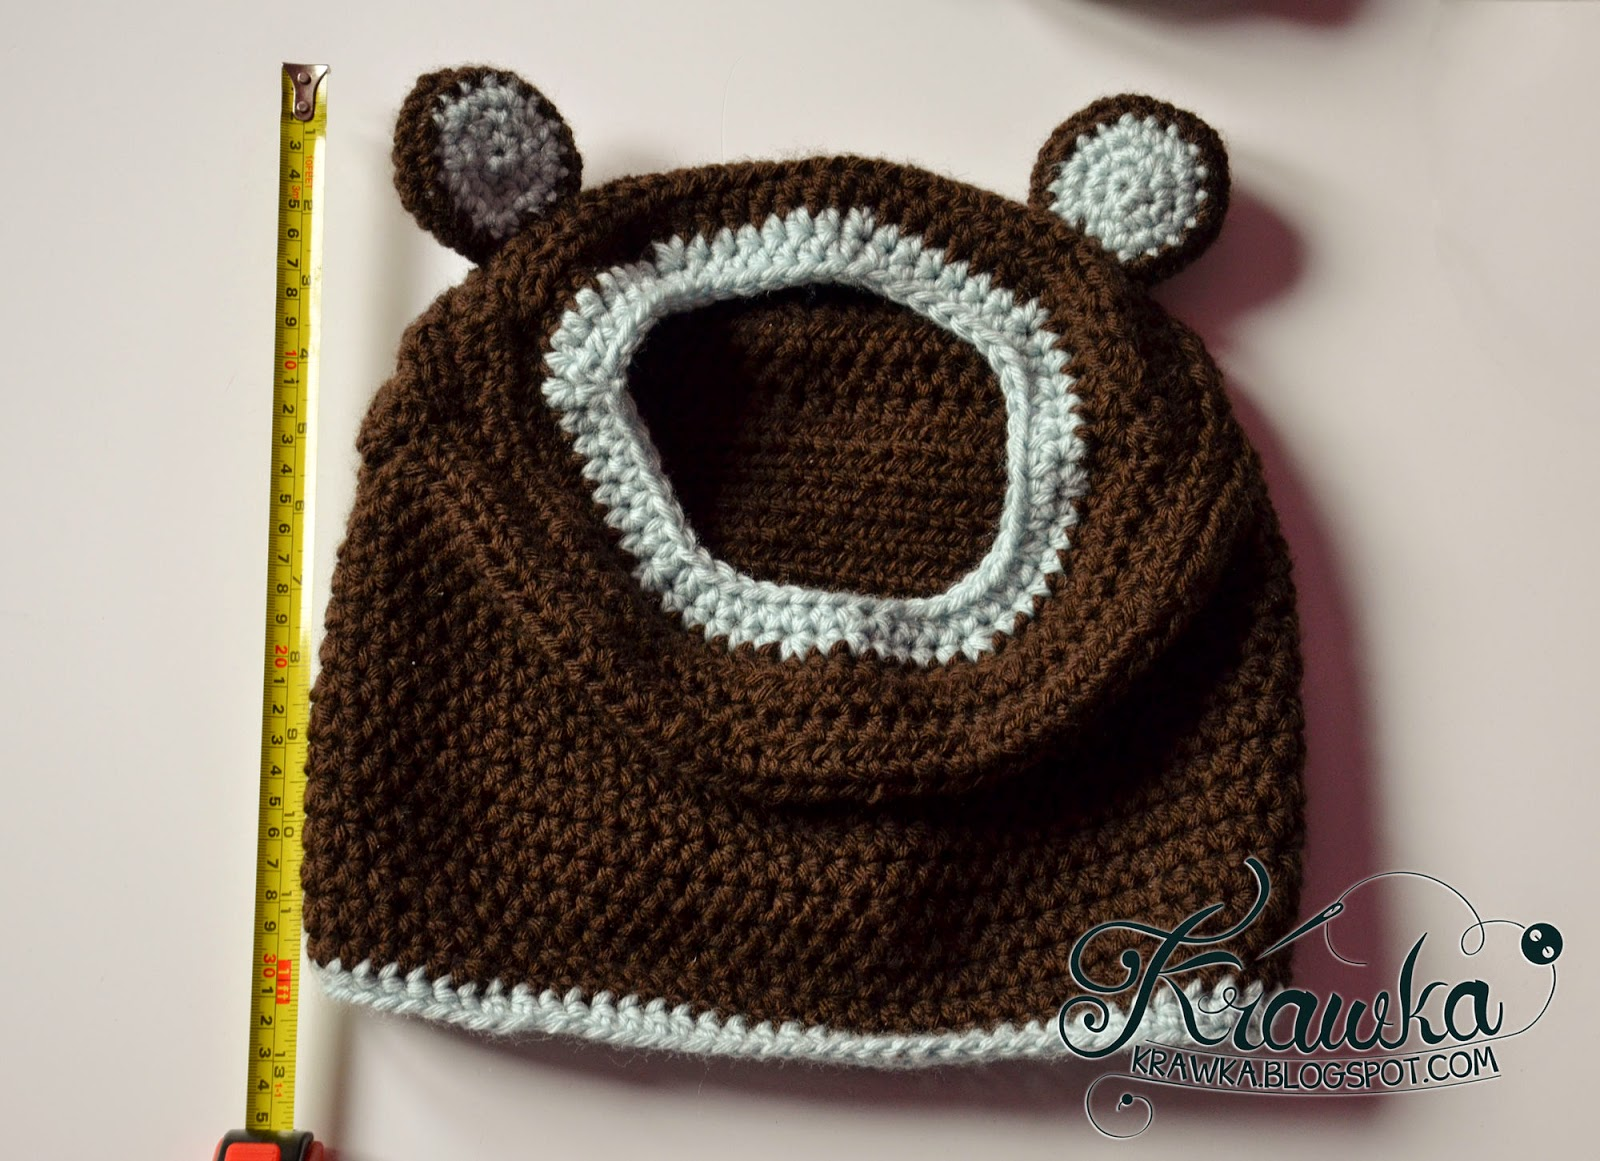 Crochet Baby Bear Cowl Pattern : Krawka: Little Bear - Hooded Cowl Pattern